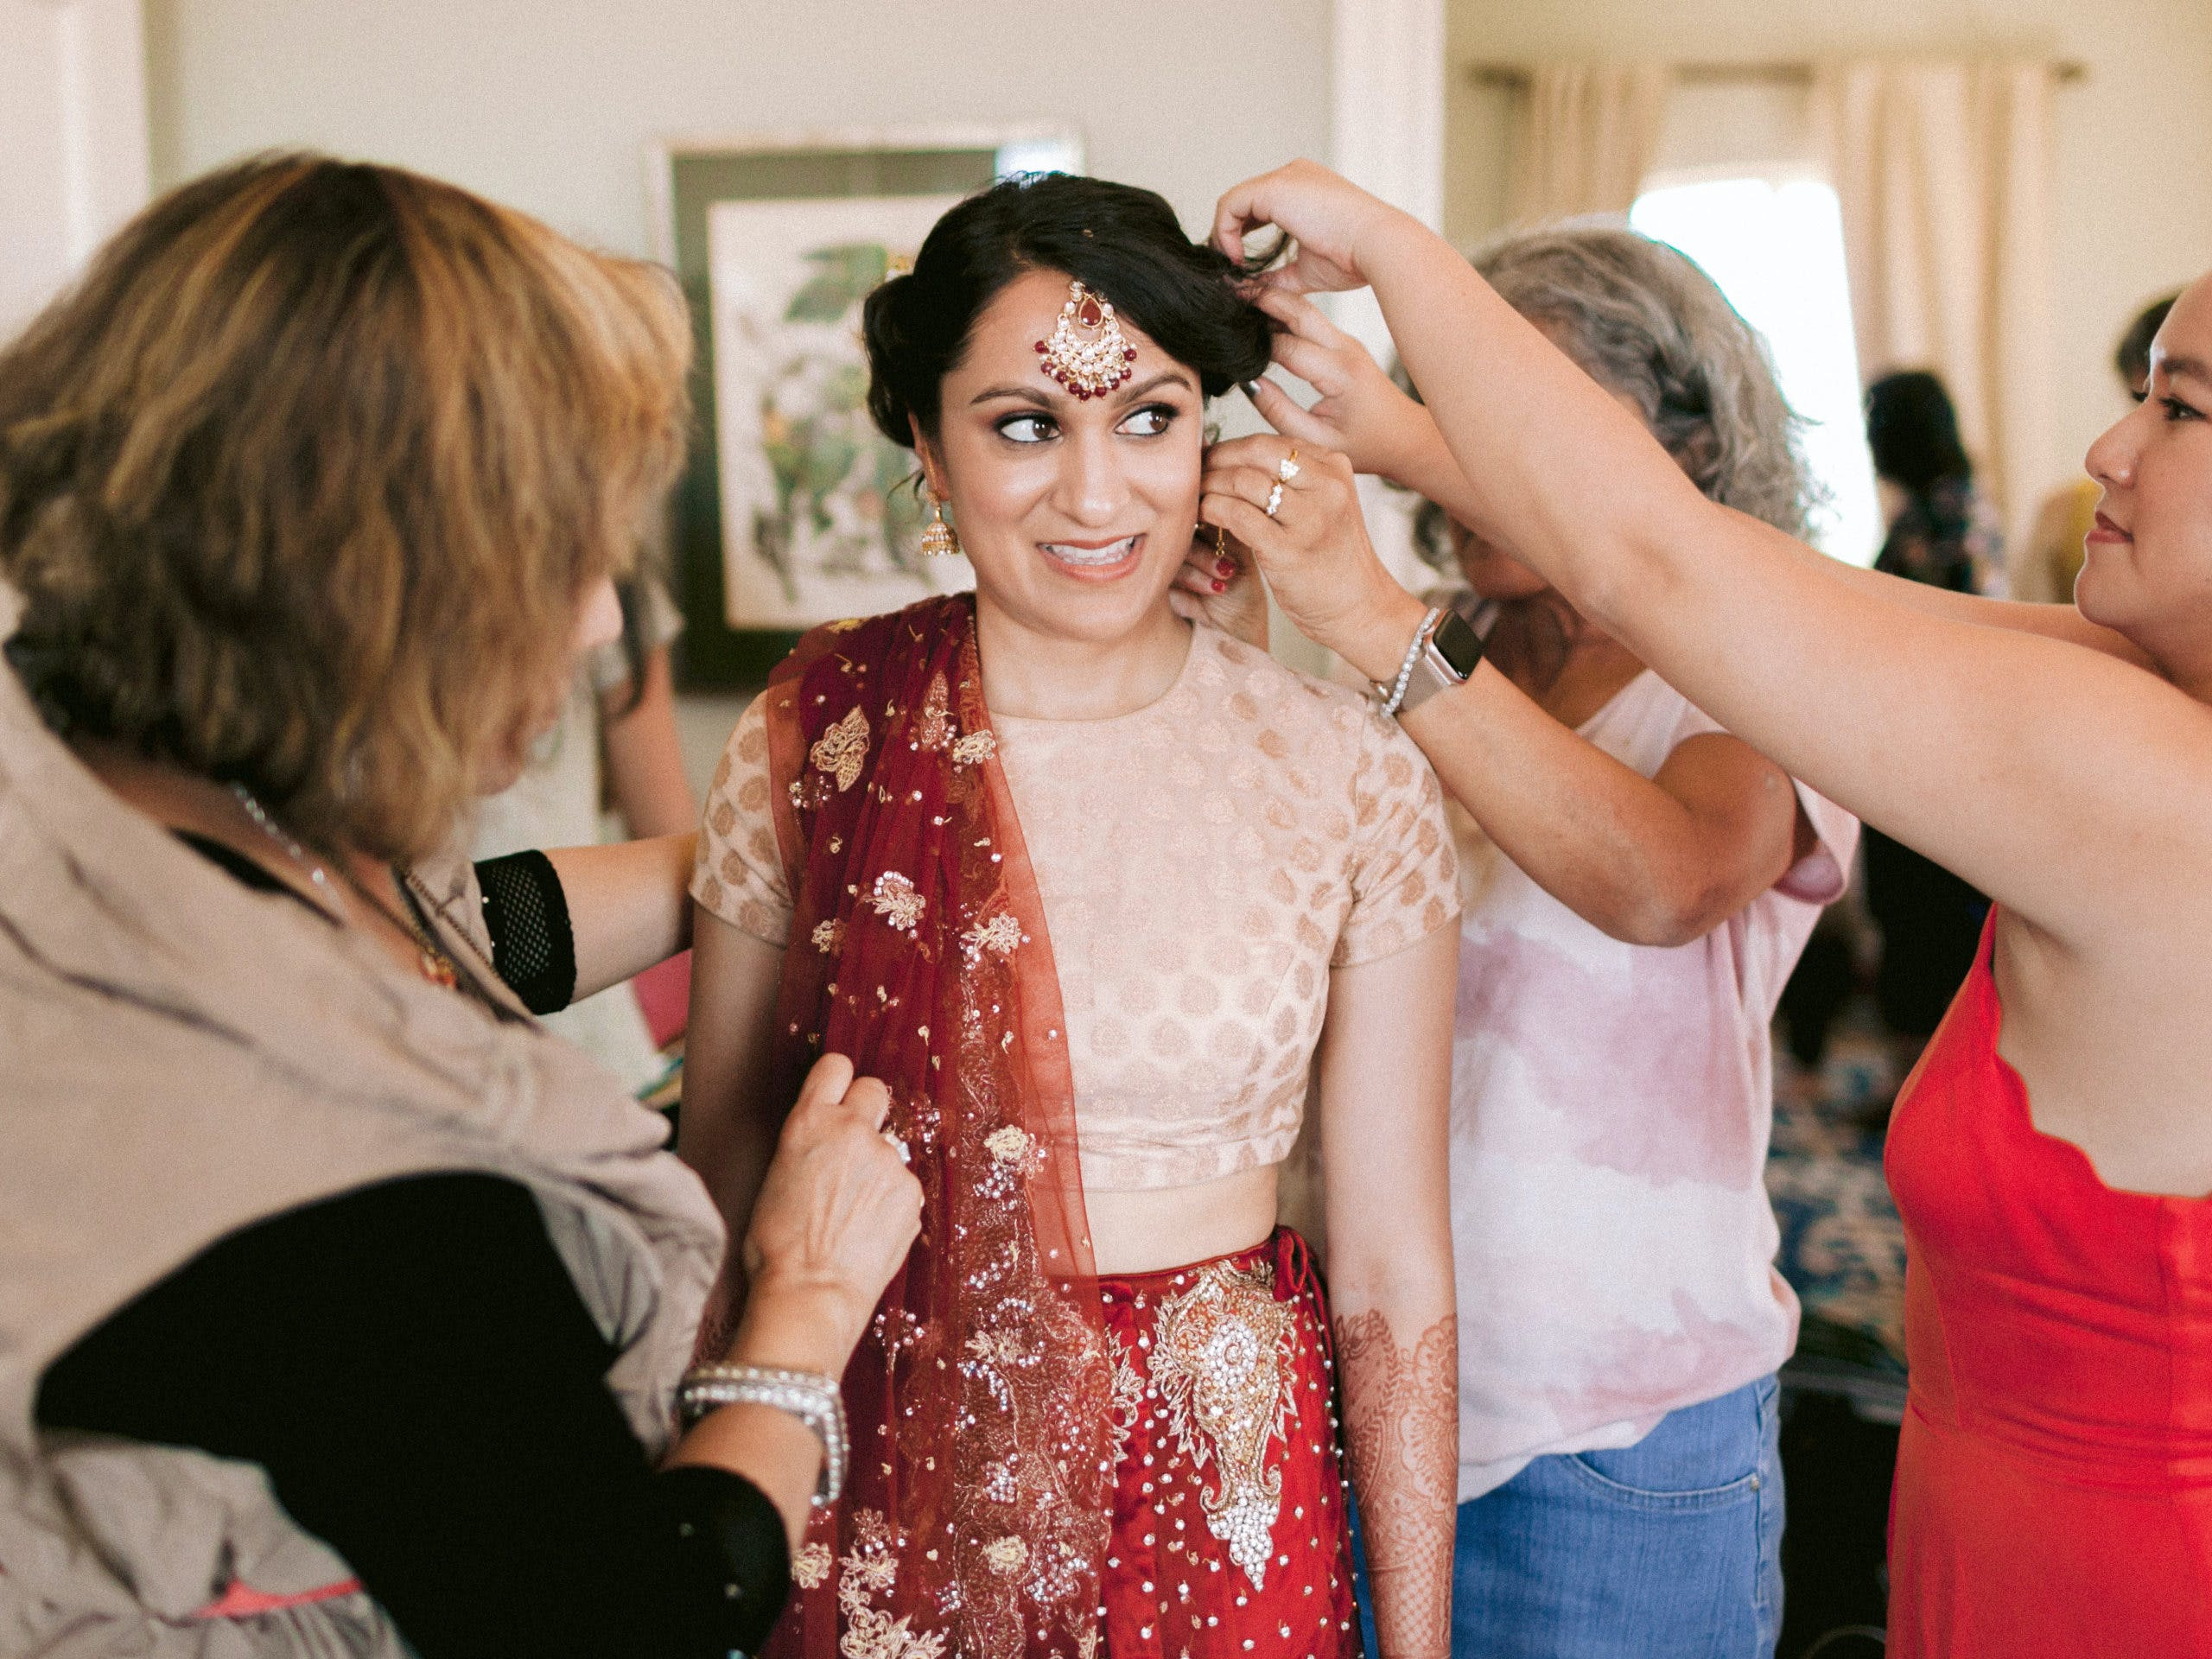 Family helping bride put on earrings and jewelry l PartySlate